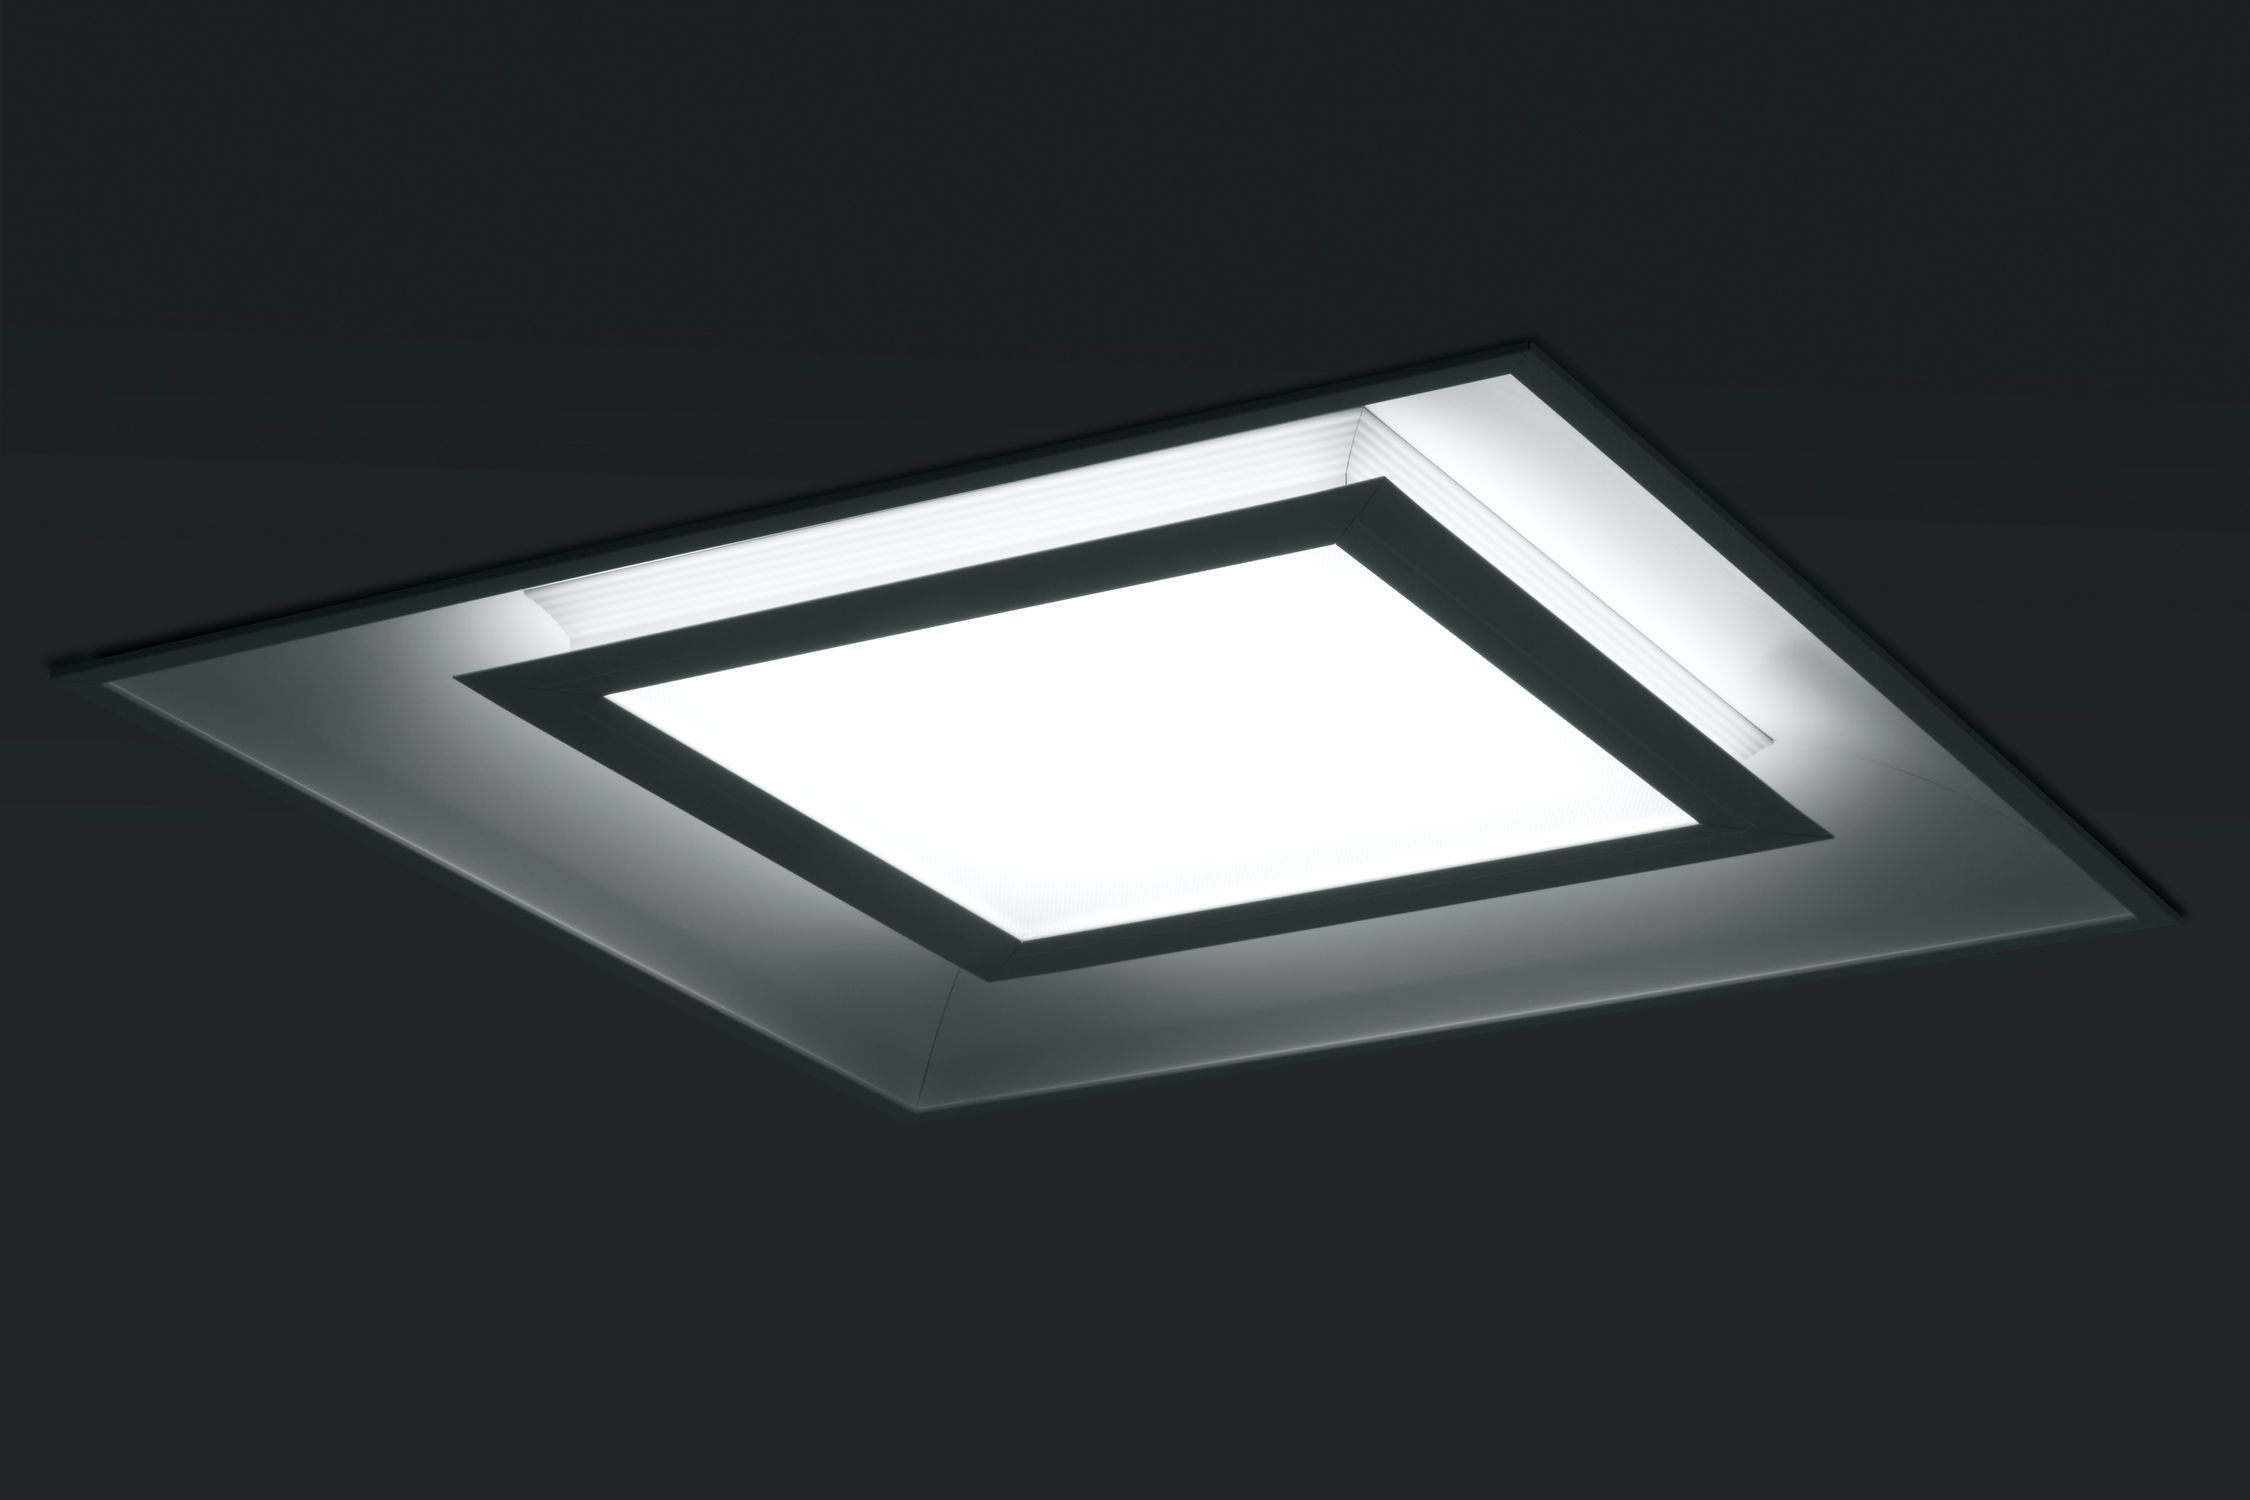 Square Ceiling Lights Soft Curves Meet Straight Lines In This Arts